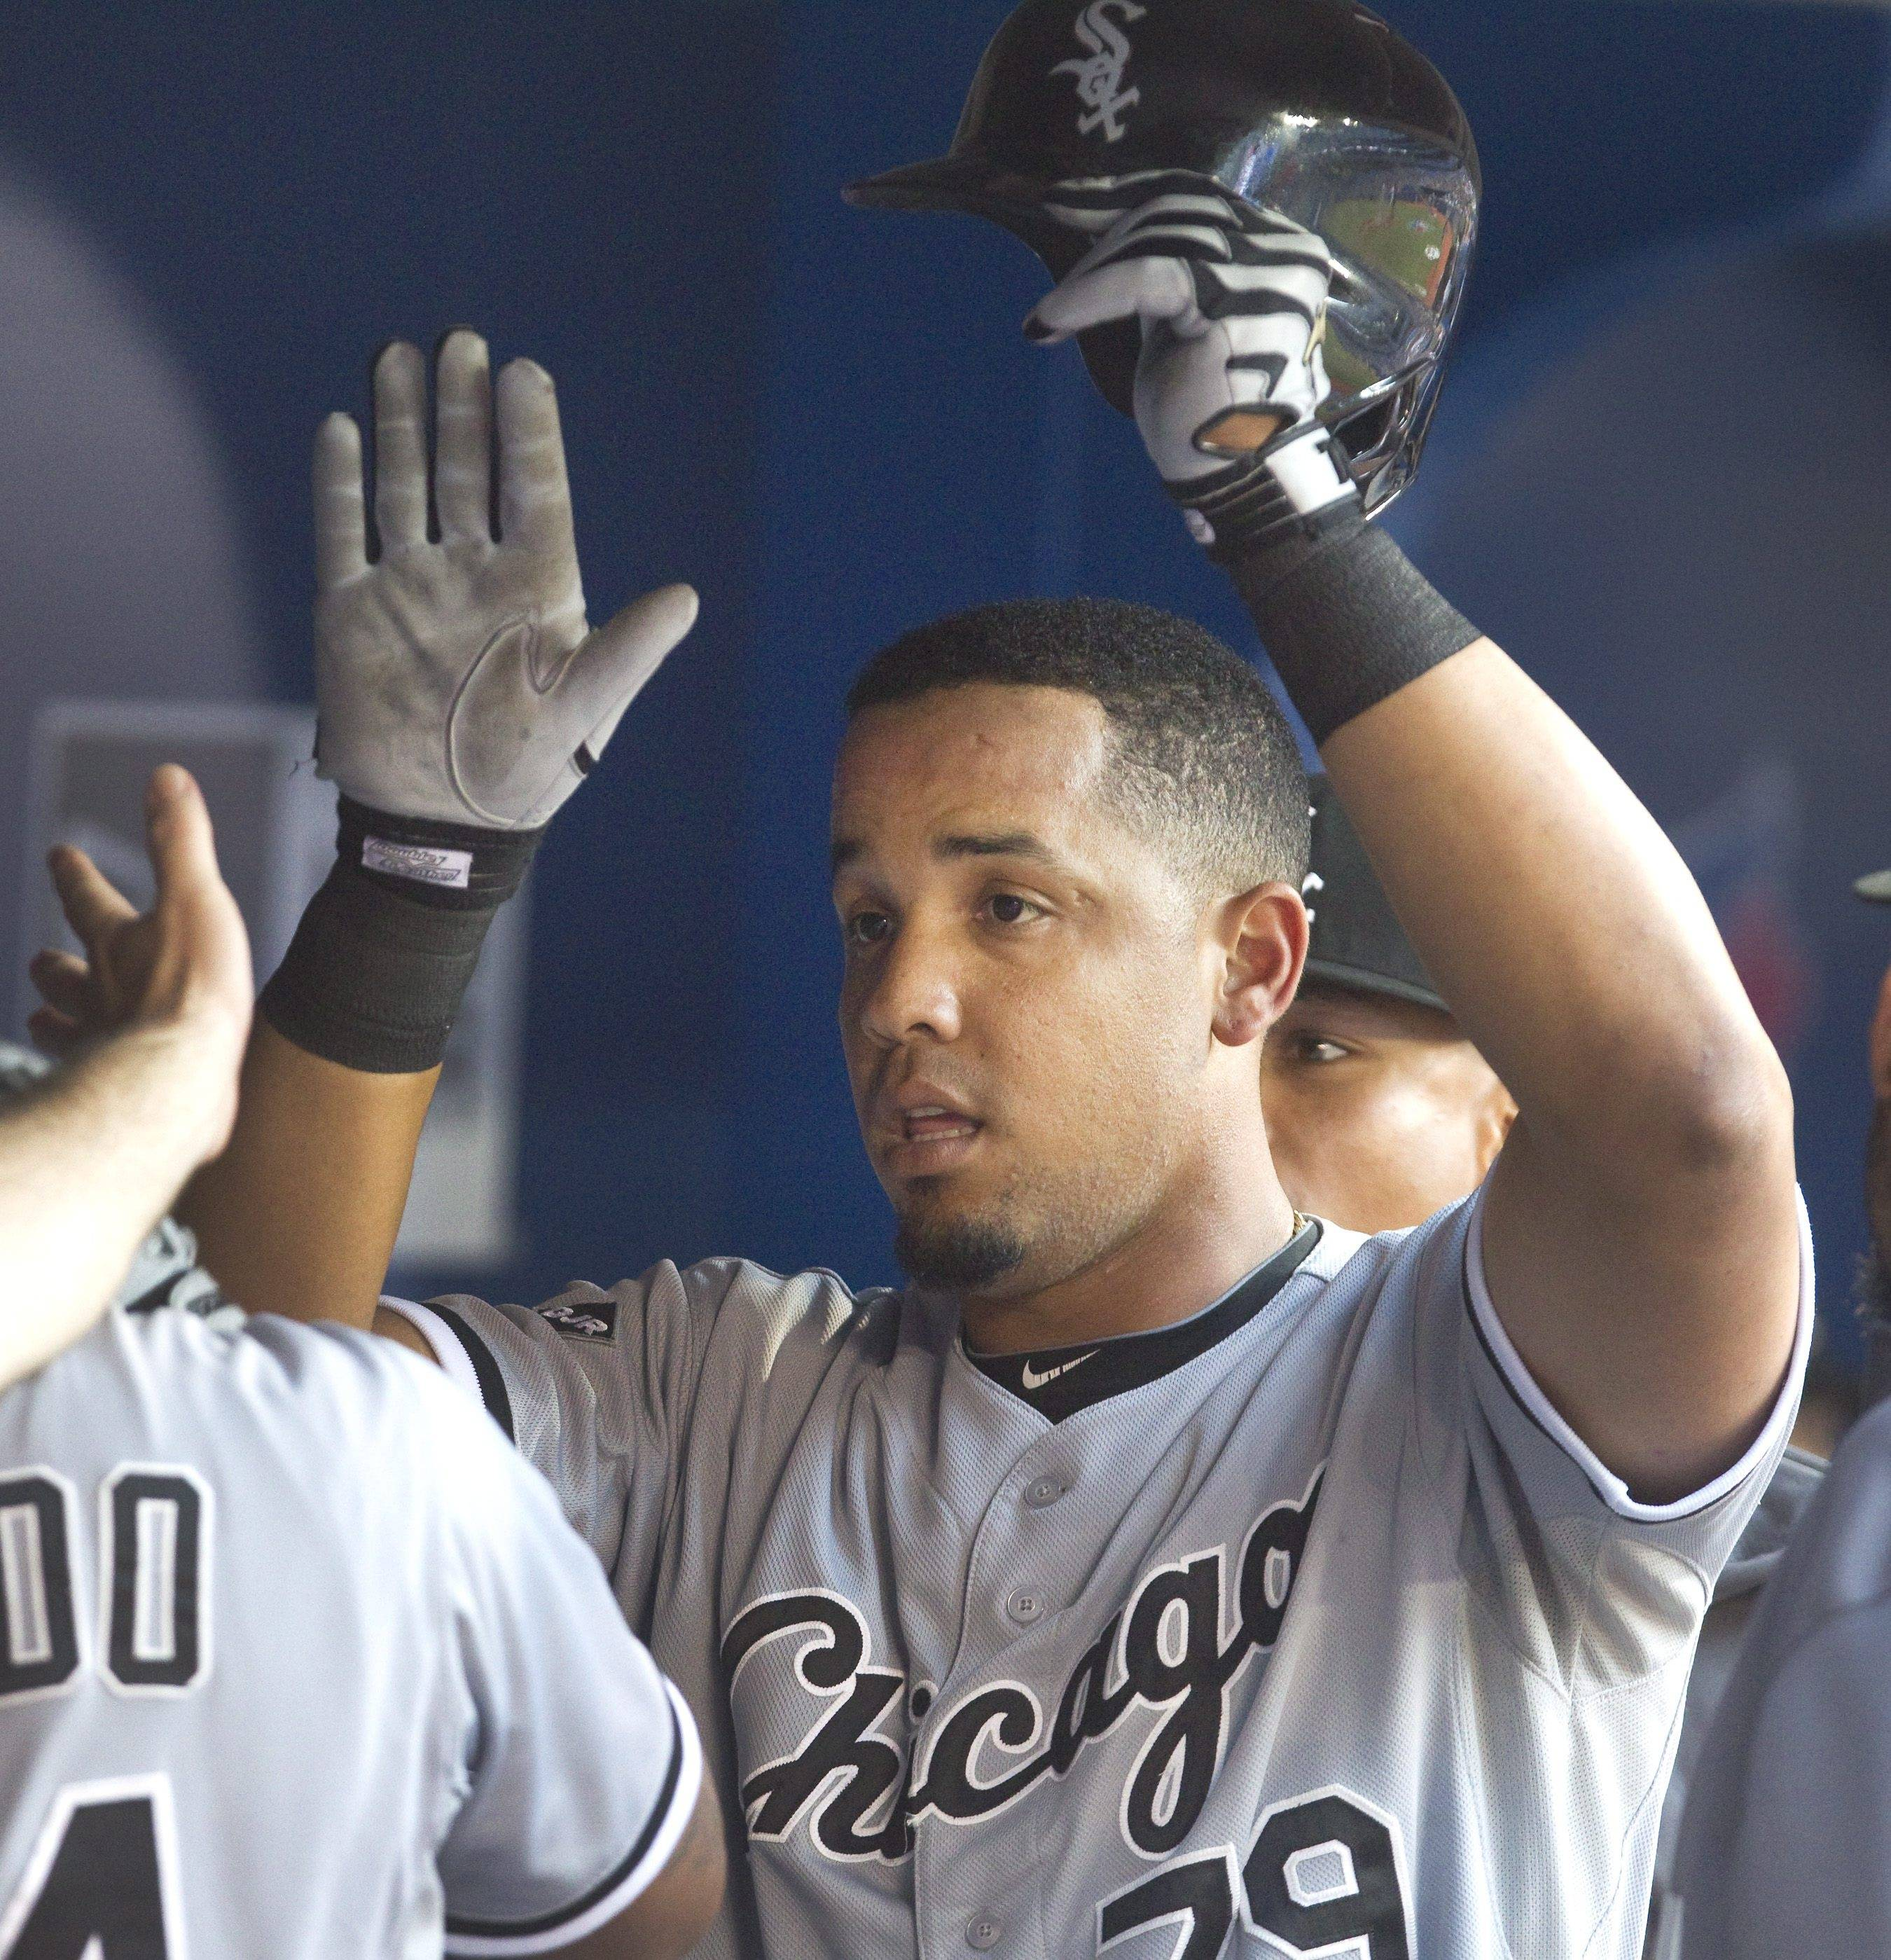 Chicago White Sox's Jose Abreu is congratulated in the dugout after he hit a solo home run off Toronto Blue Jays starting pitcher R.A. Dickey during the fifth inning of a baseball game in Toronto on Friday, June 27, 2014.